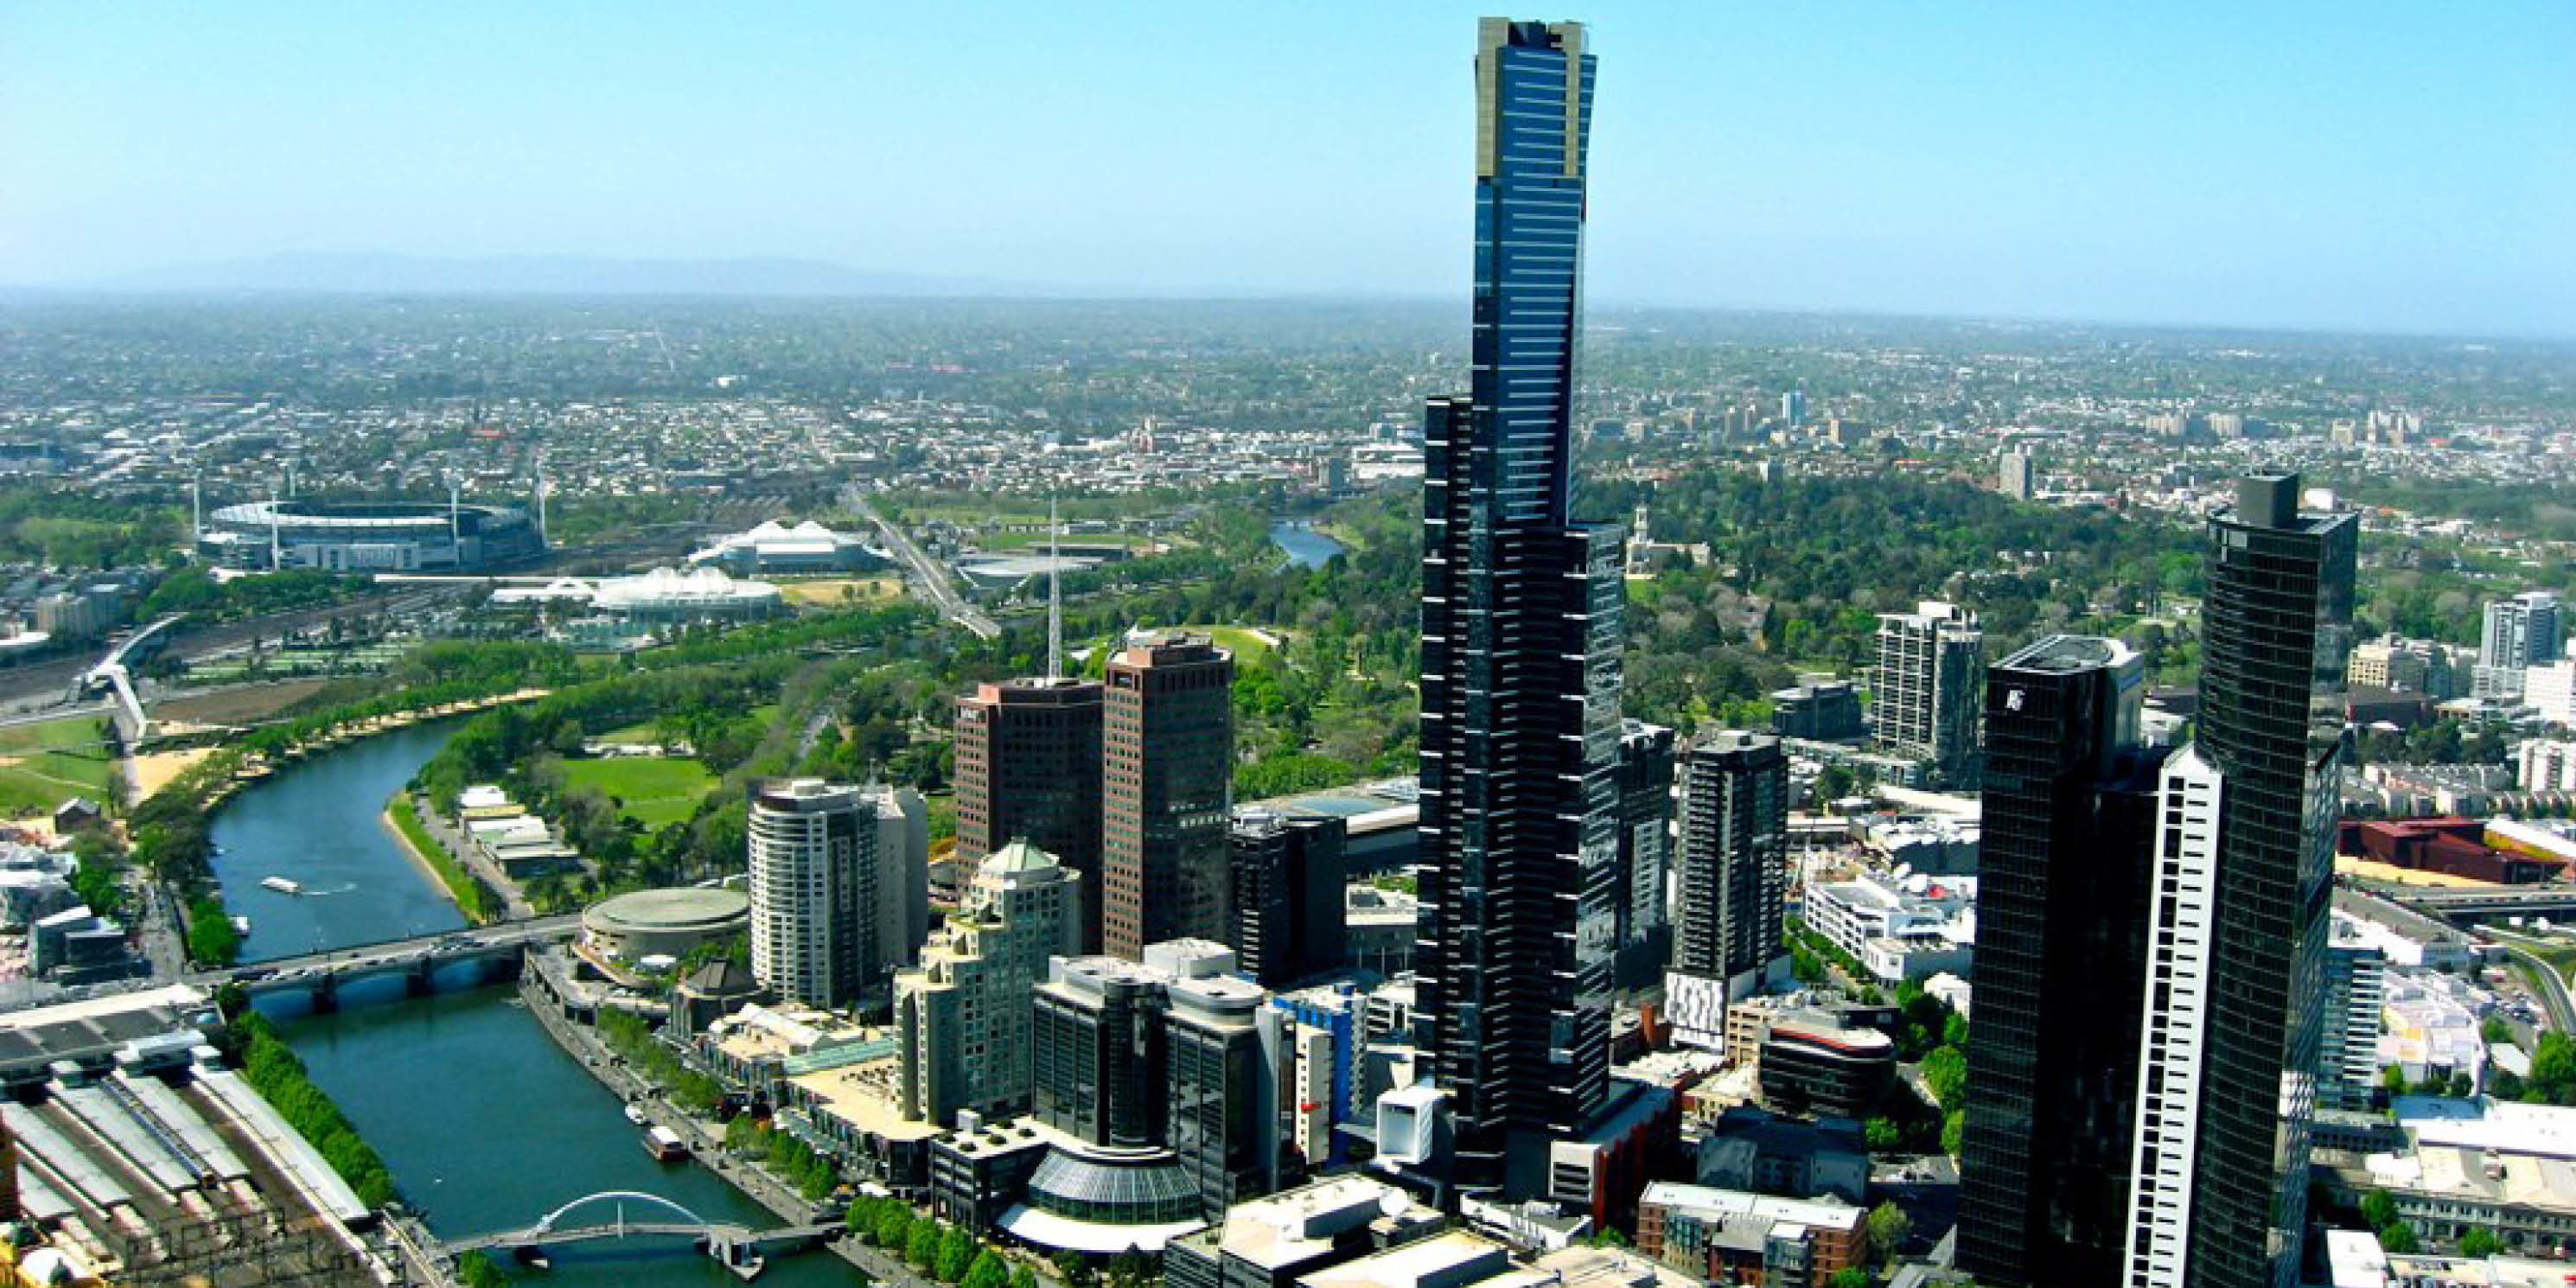 aerial view of tall, modern skyscrapers in Melbourne